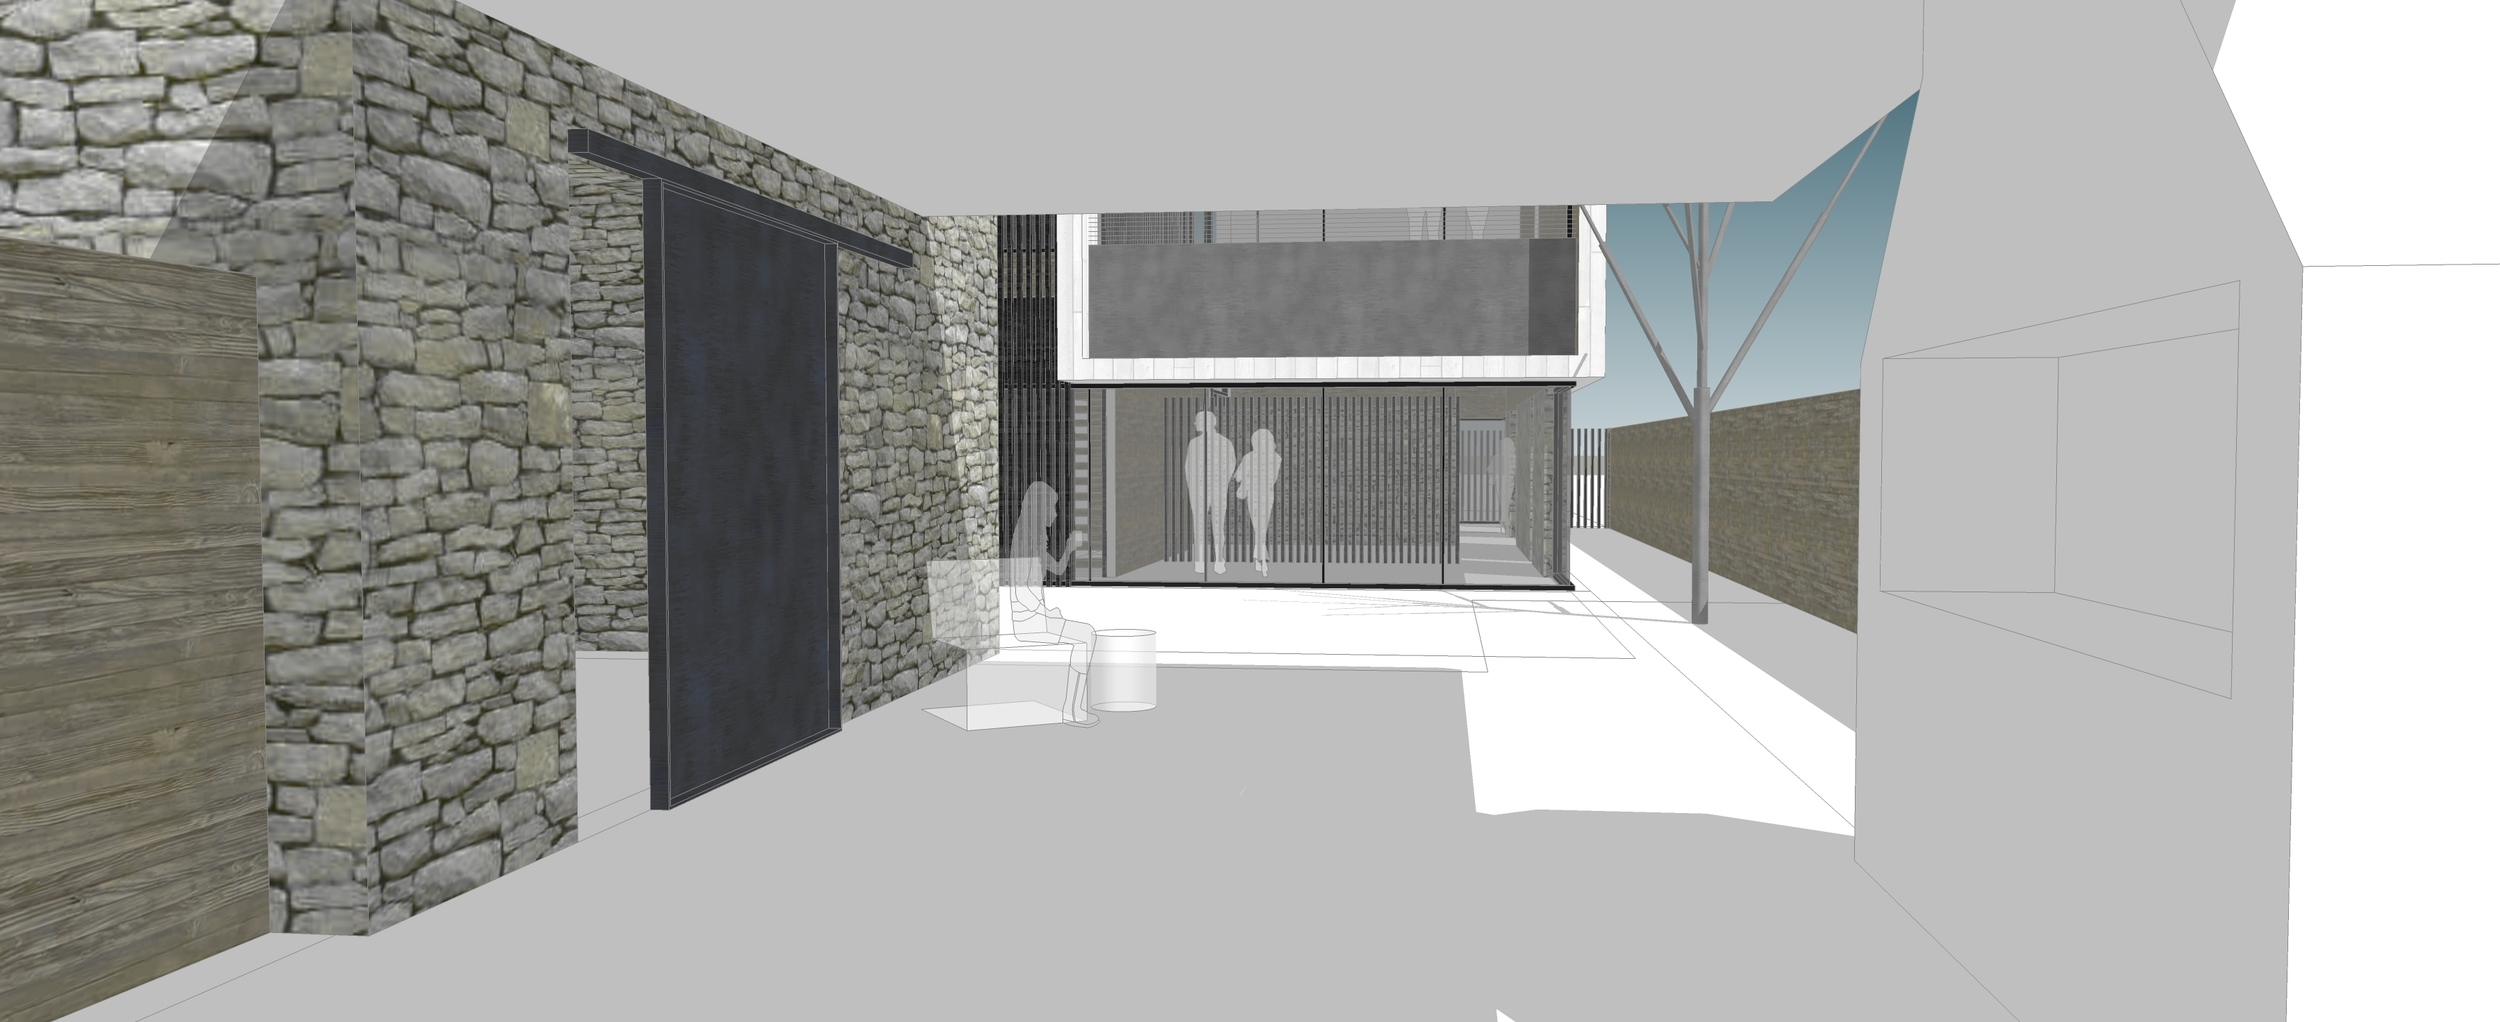 Scheme RQ View from Quincho to House